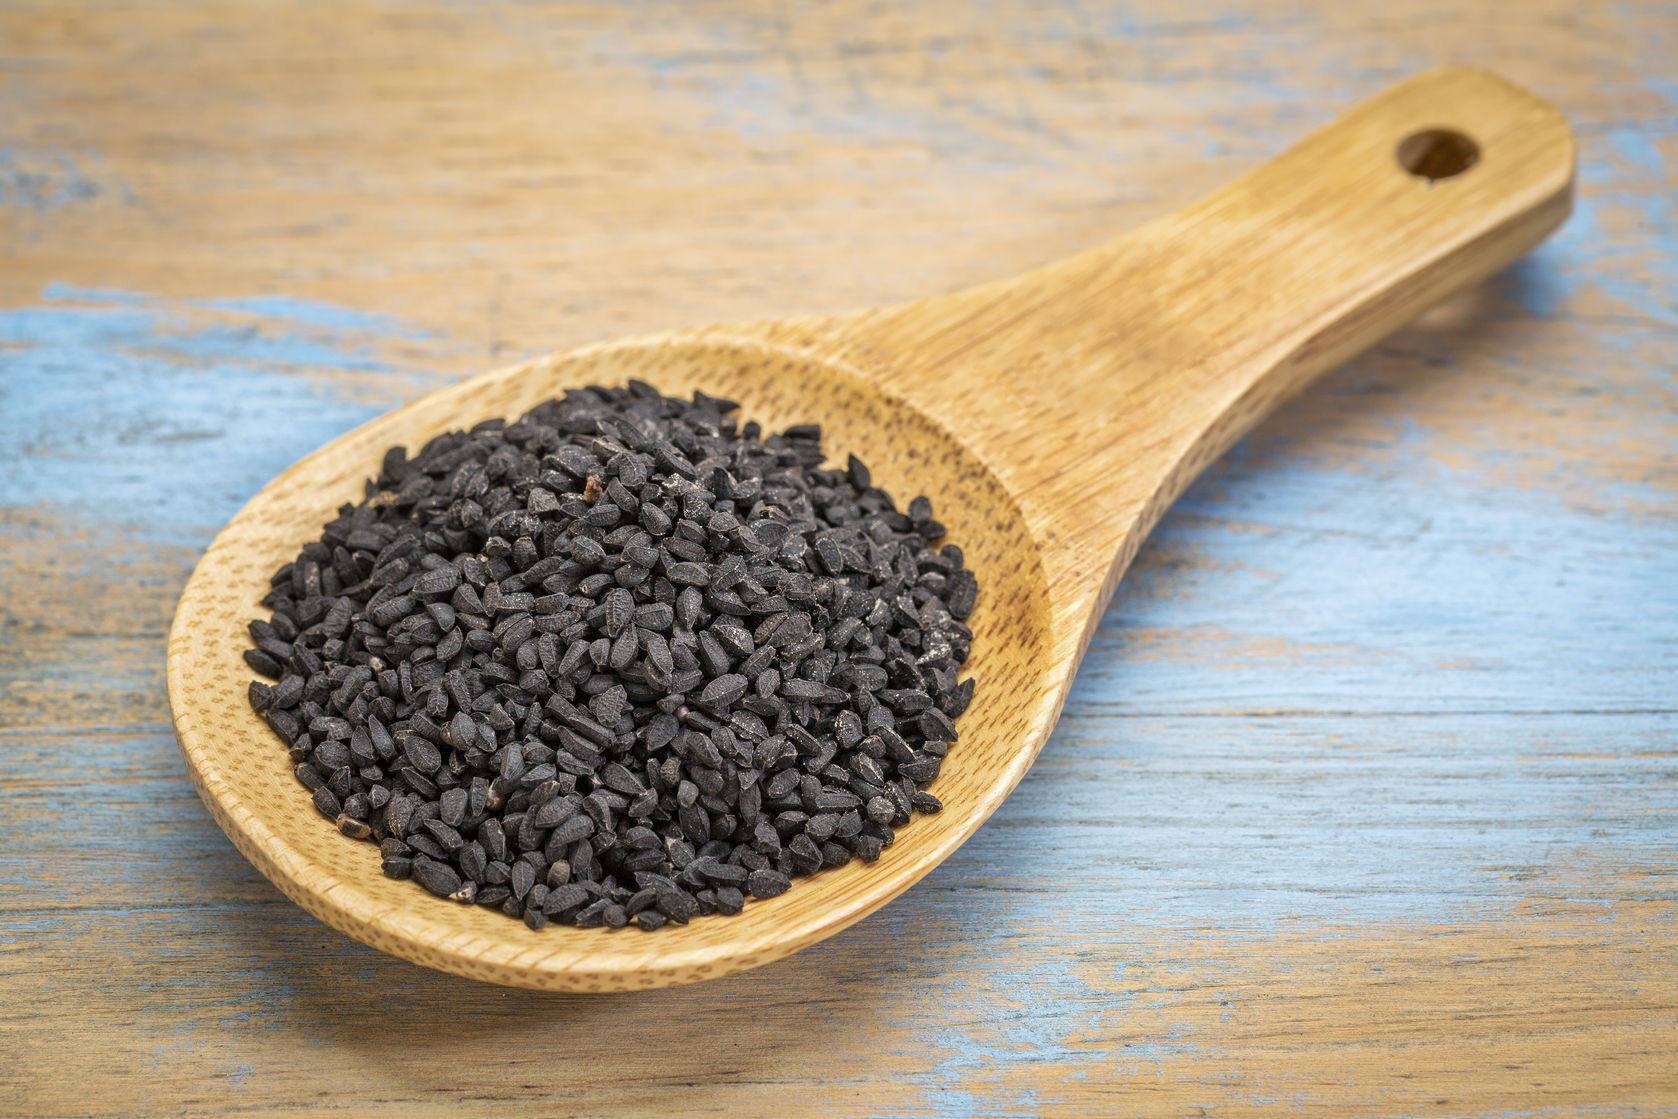 black seed helps cholesterol, blood pressure and diabetes